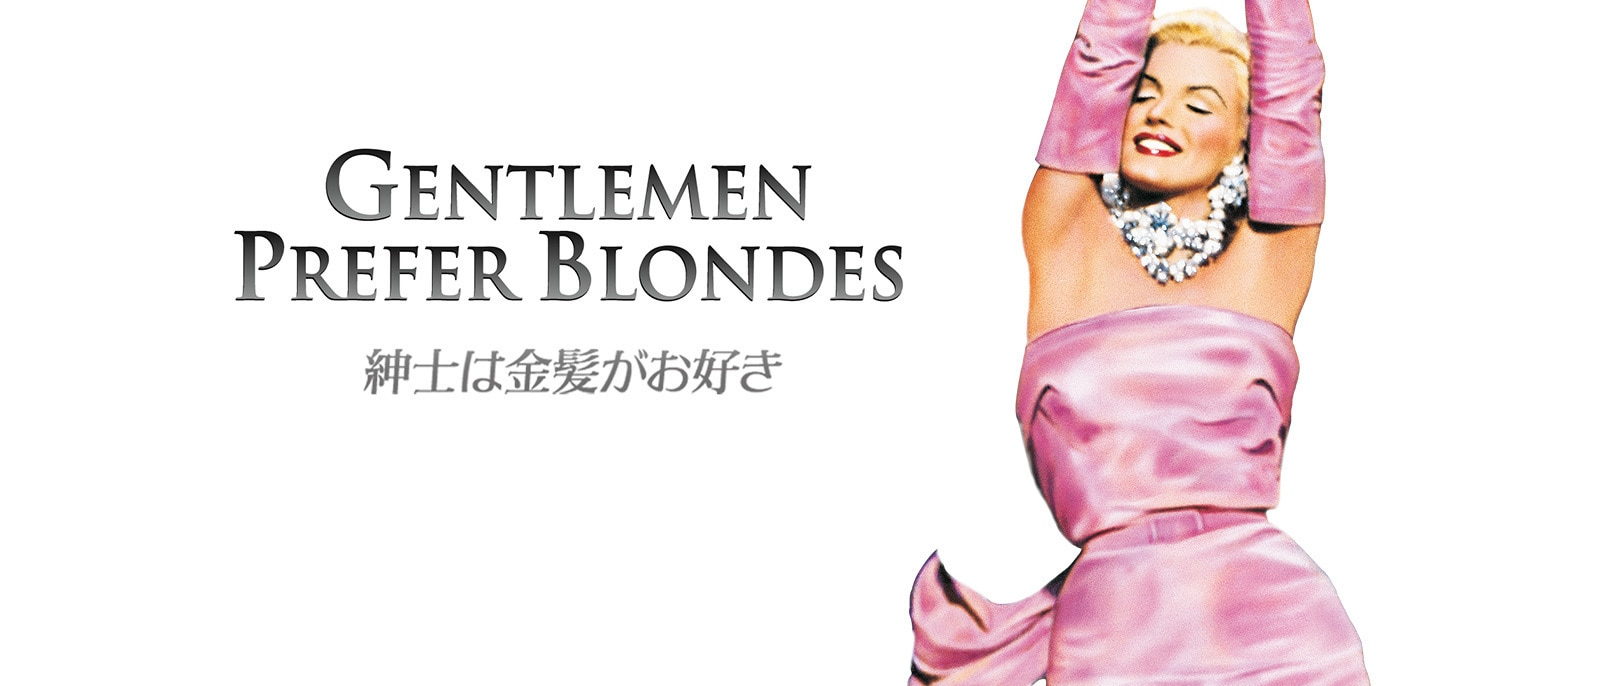 紳士は金髪がお好き Gentlemen Prefer Blonds Hero